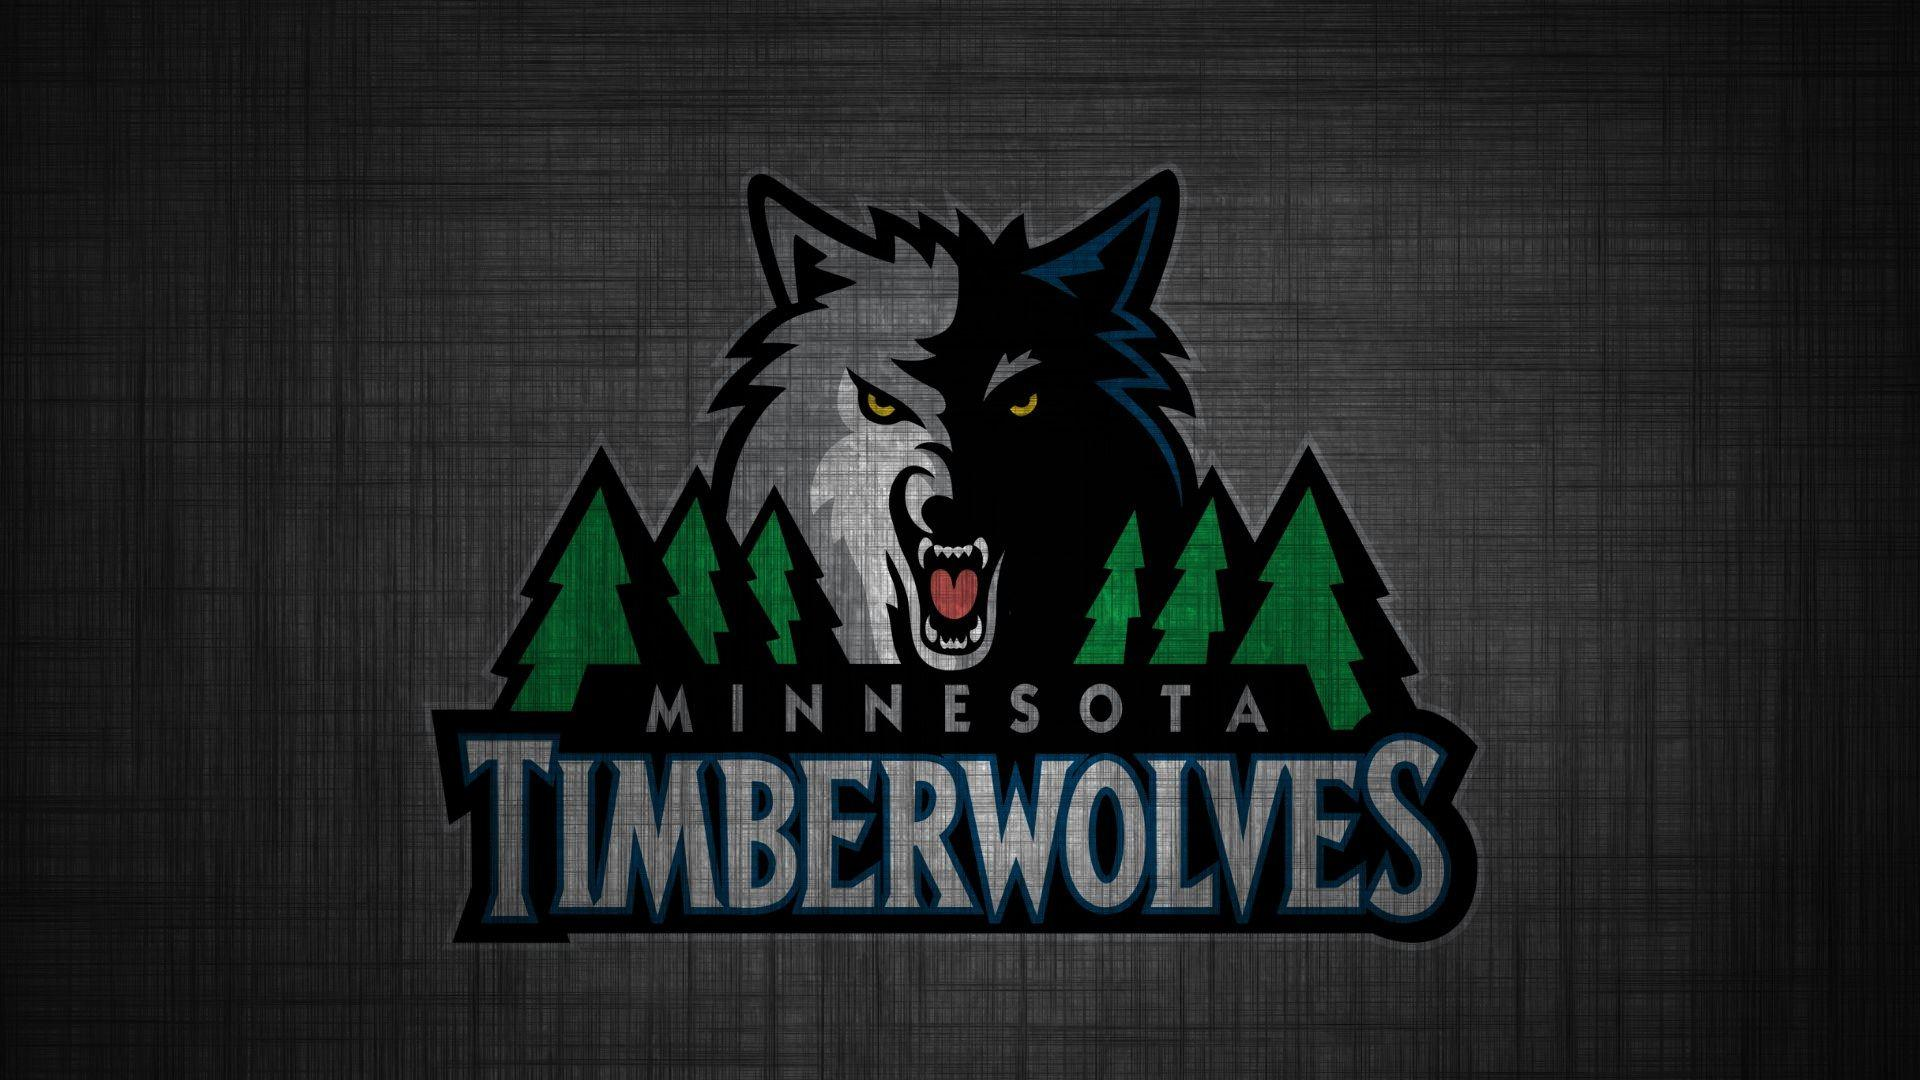 Minnesota Timberwolves wallpapers hd free download